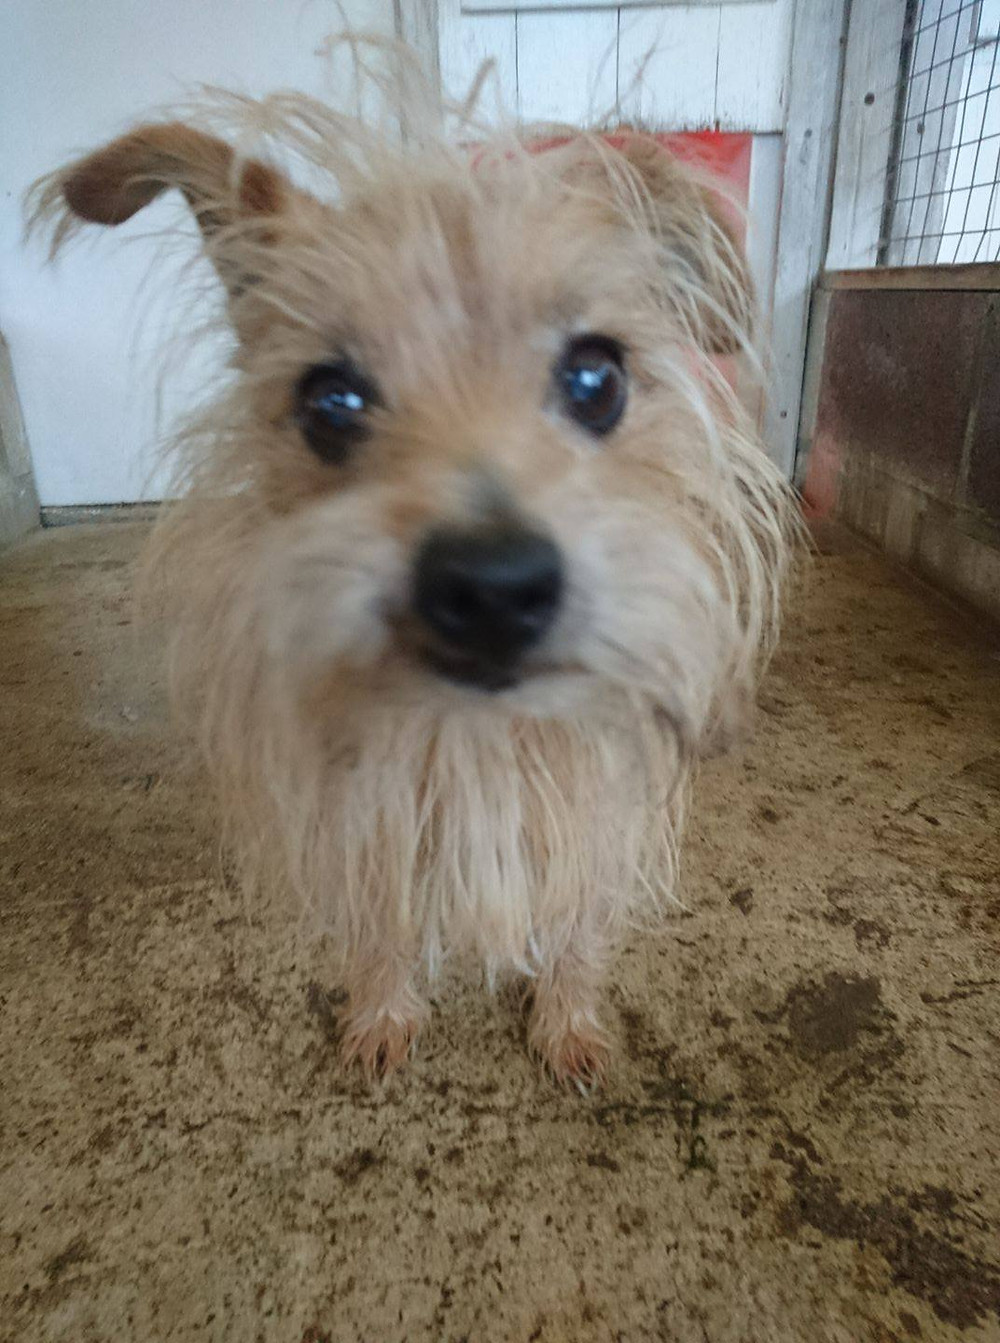 Terrier with overgrown hair.